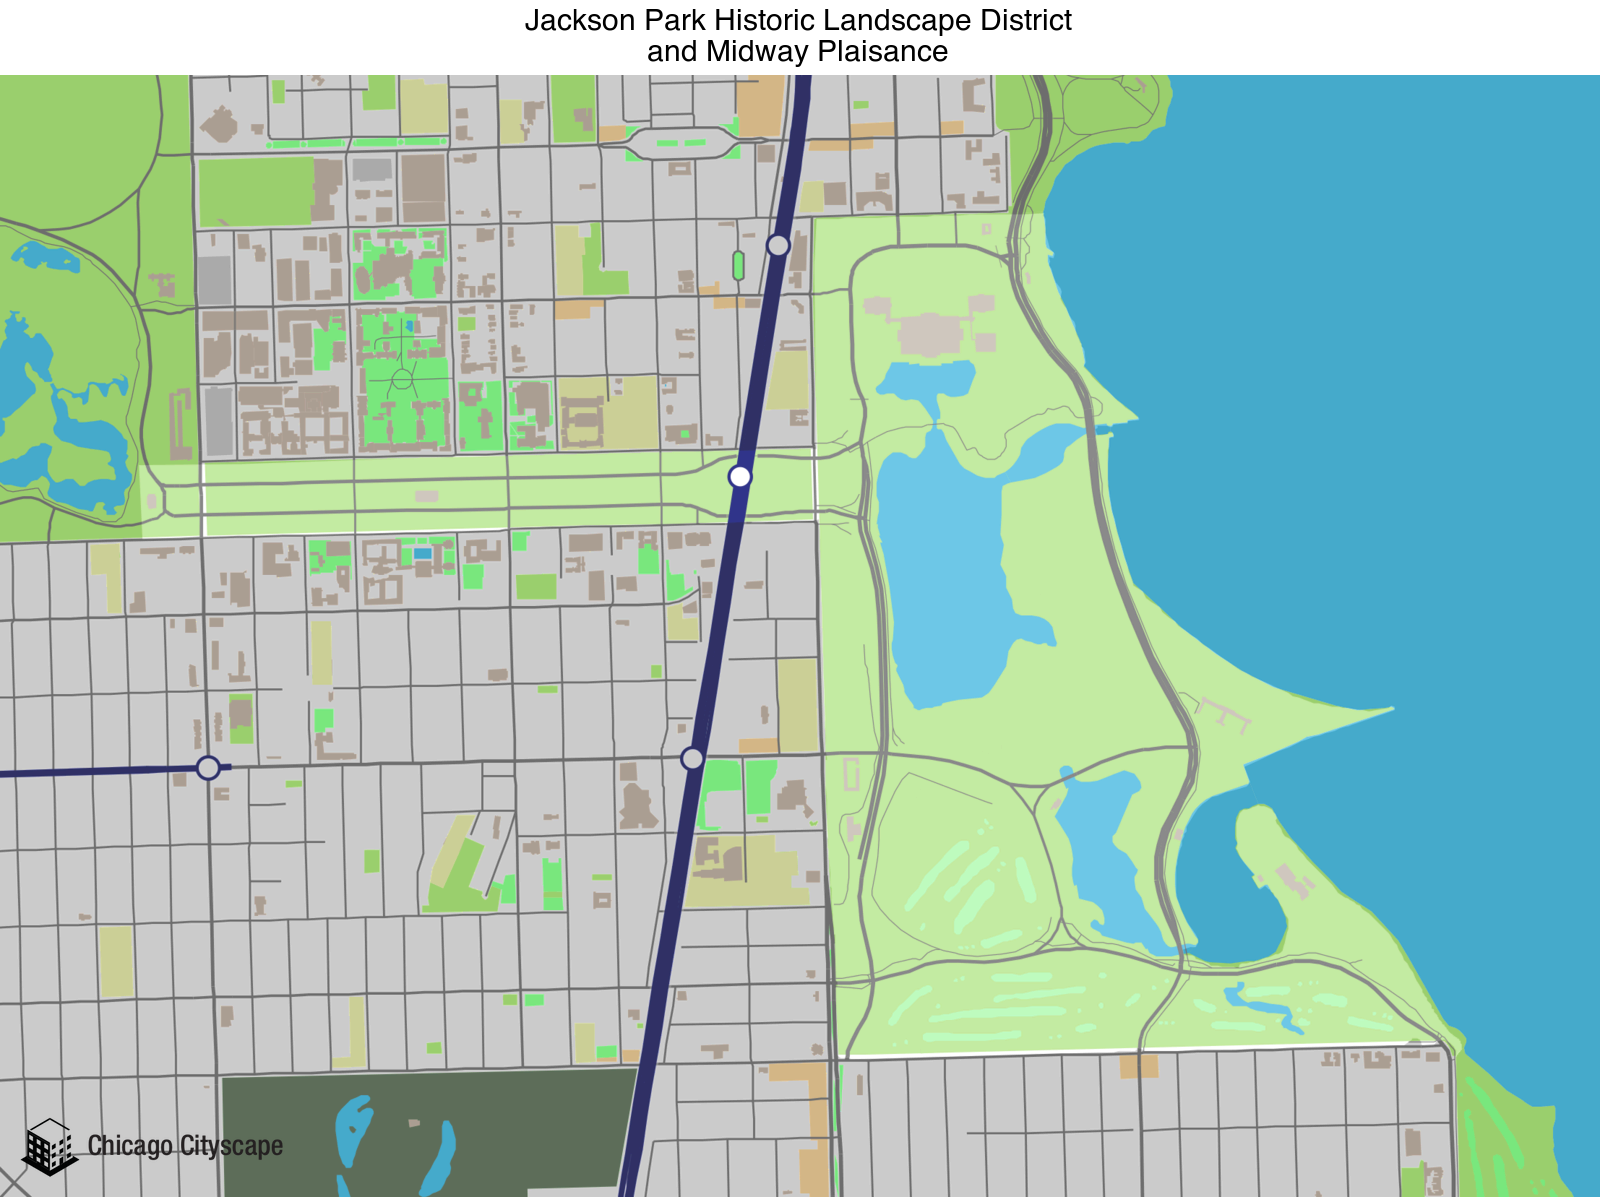 Jackson Park Chicago Map Chicago Cityscape   Map of building projects, properties, and